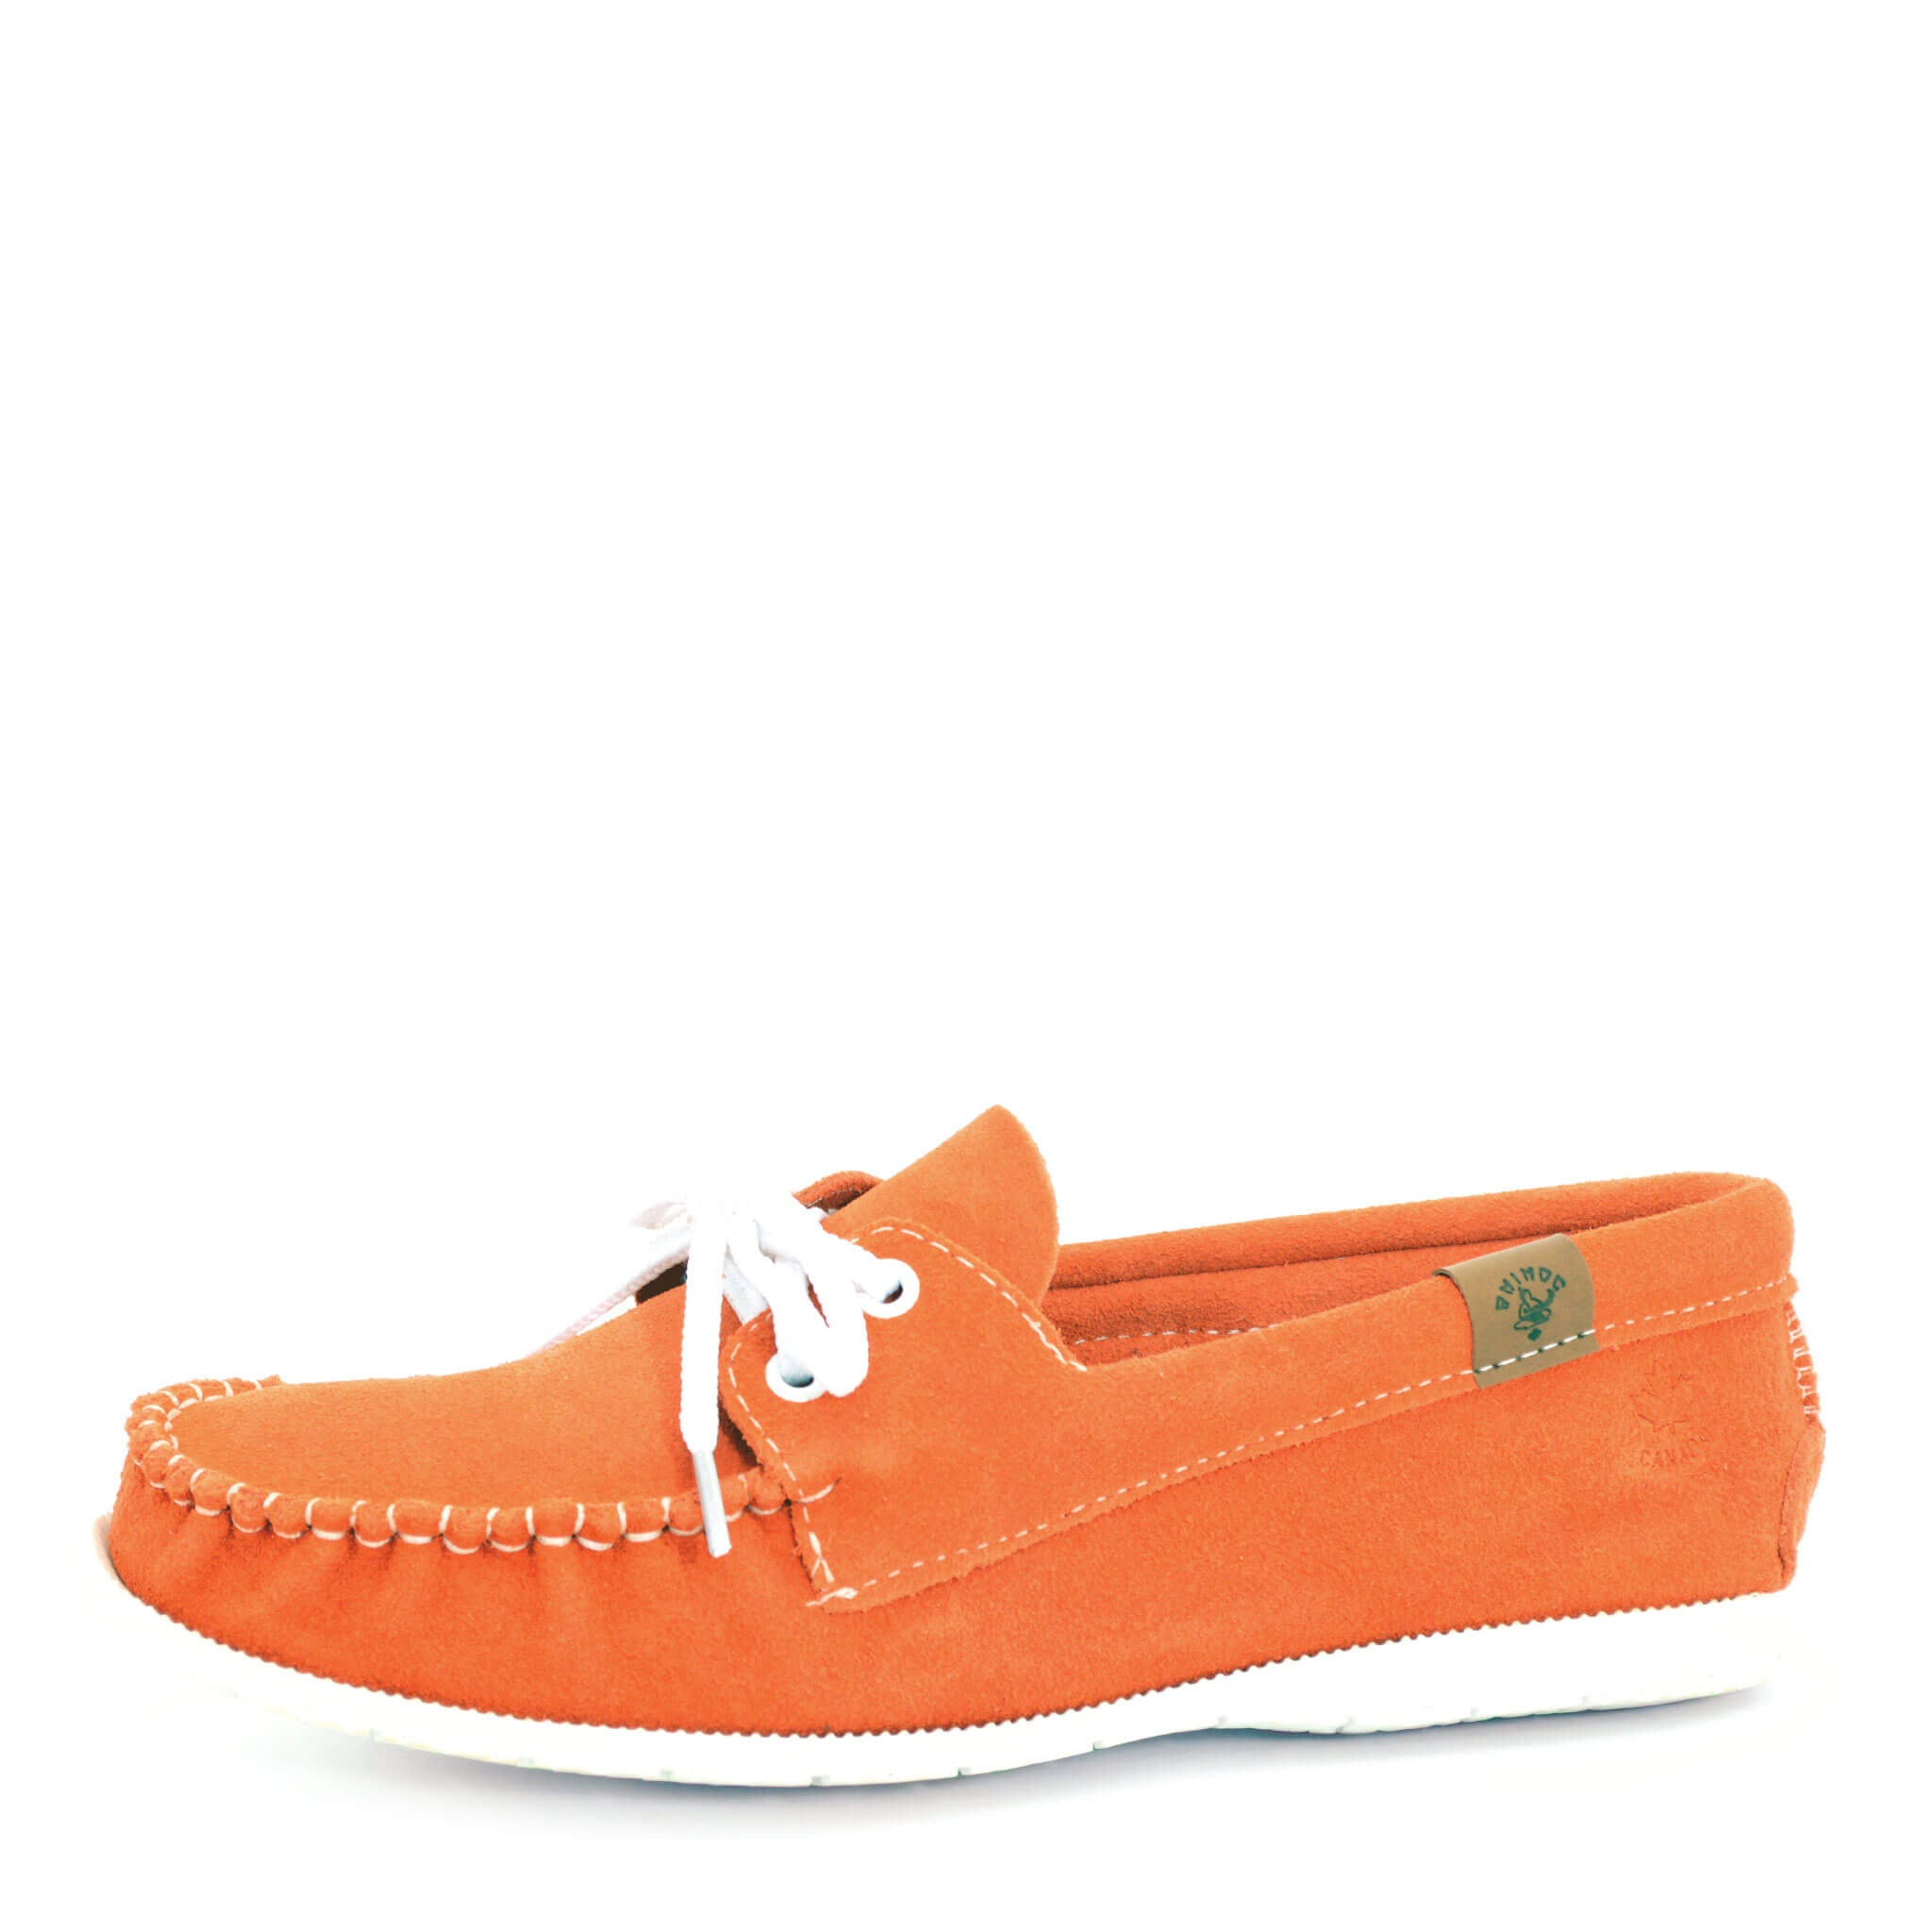 AMIMOC Moccasin Urban Moc Orange